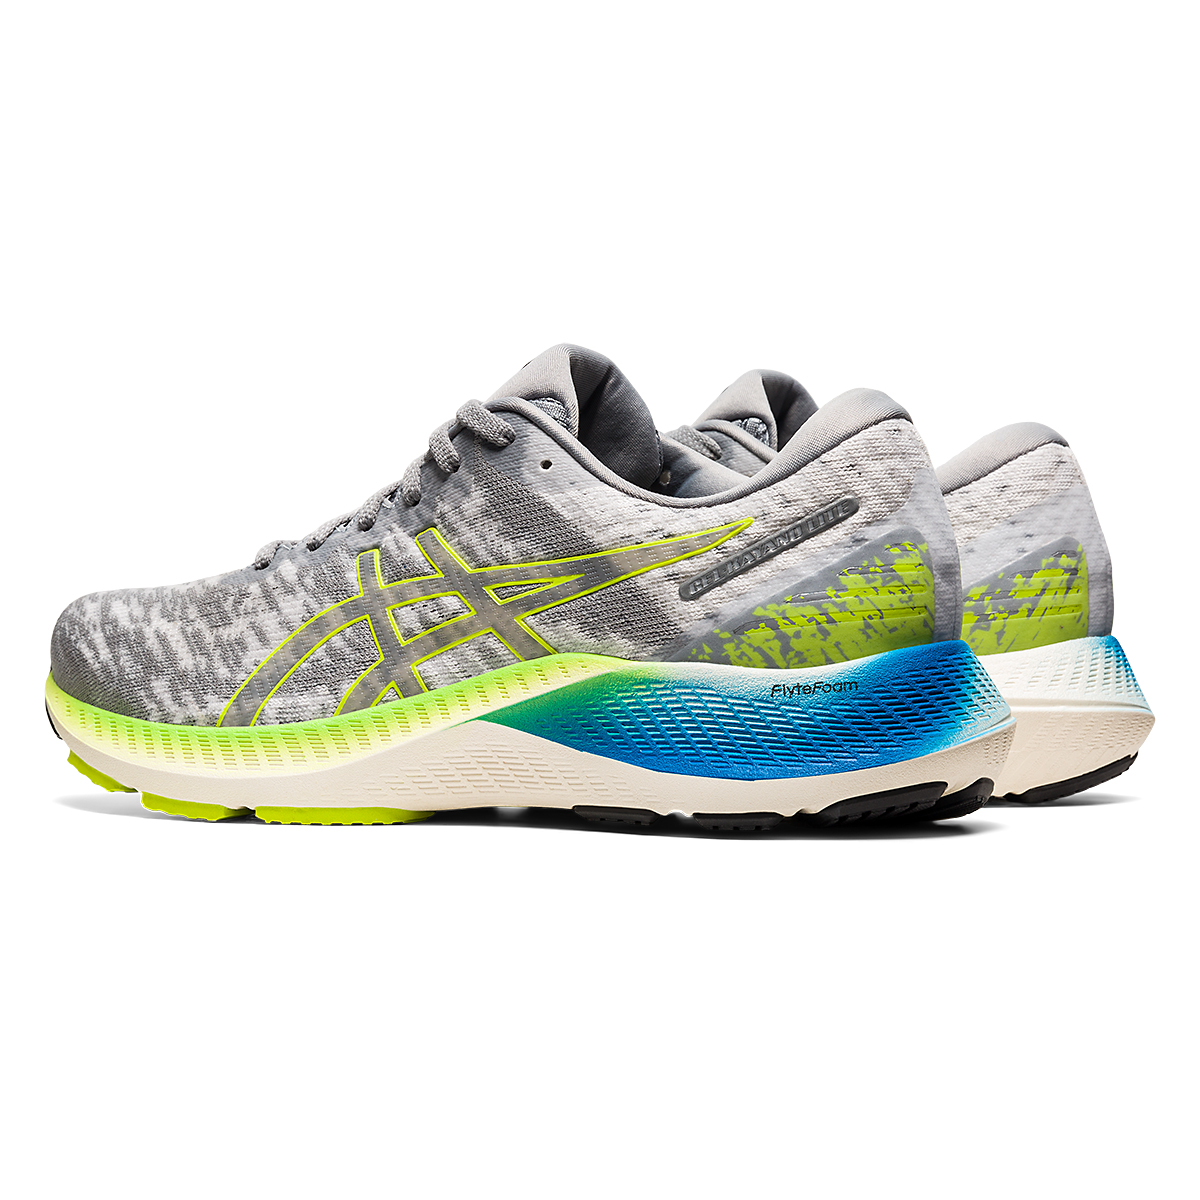 Men's Asics GEL-Kayano Lite Running Shoe - Color: Piedmont Grey/Sheet Rock - Size: 13 - Width: Regular, Piedmont Grey/Sheet Rock, large, image 4